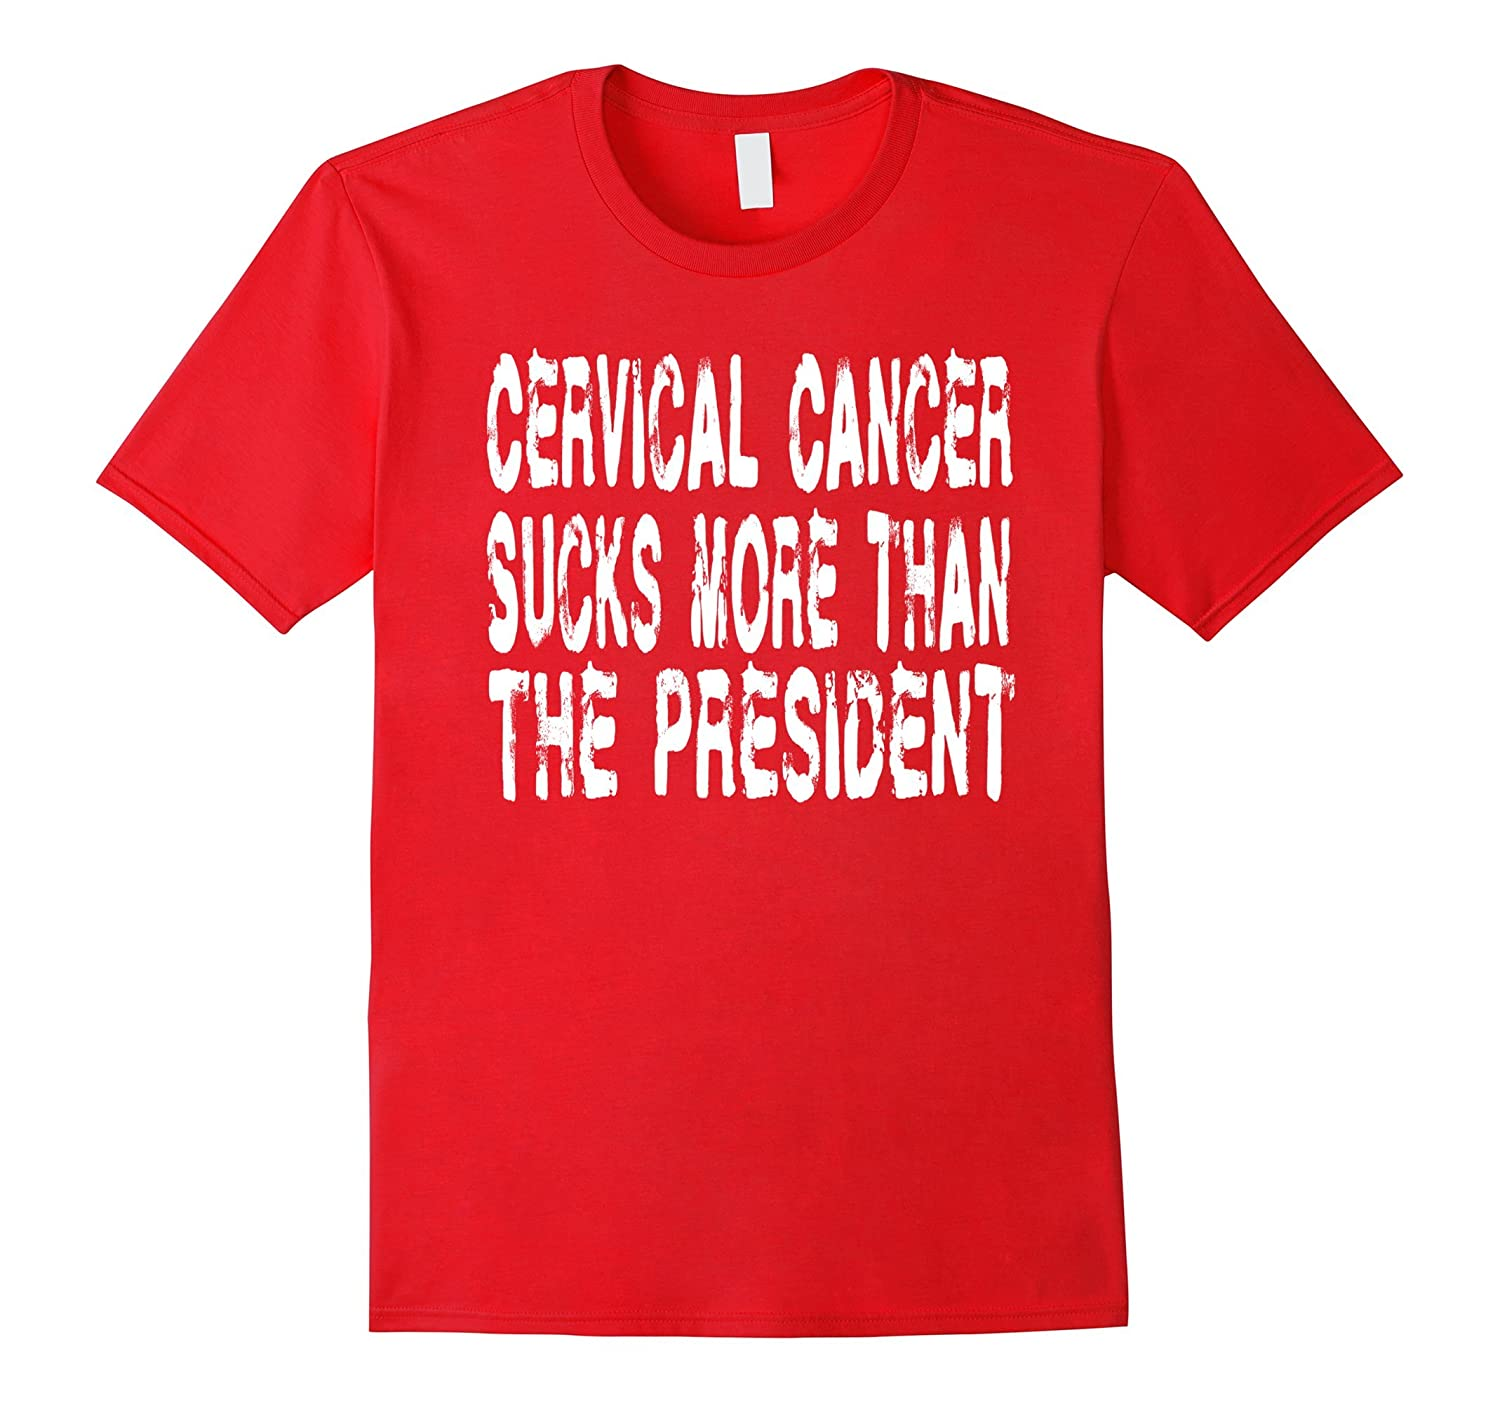 Cervical Cancer Sucks More Than The President Tee Shirt